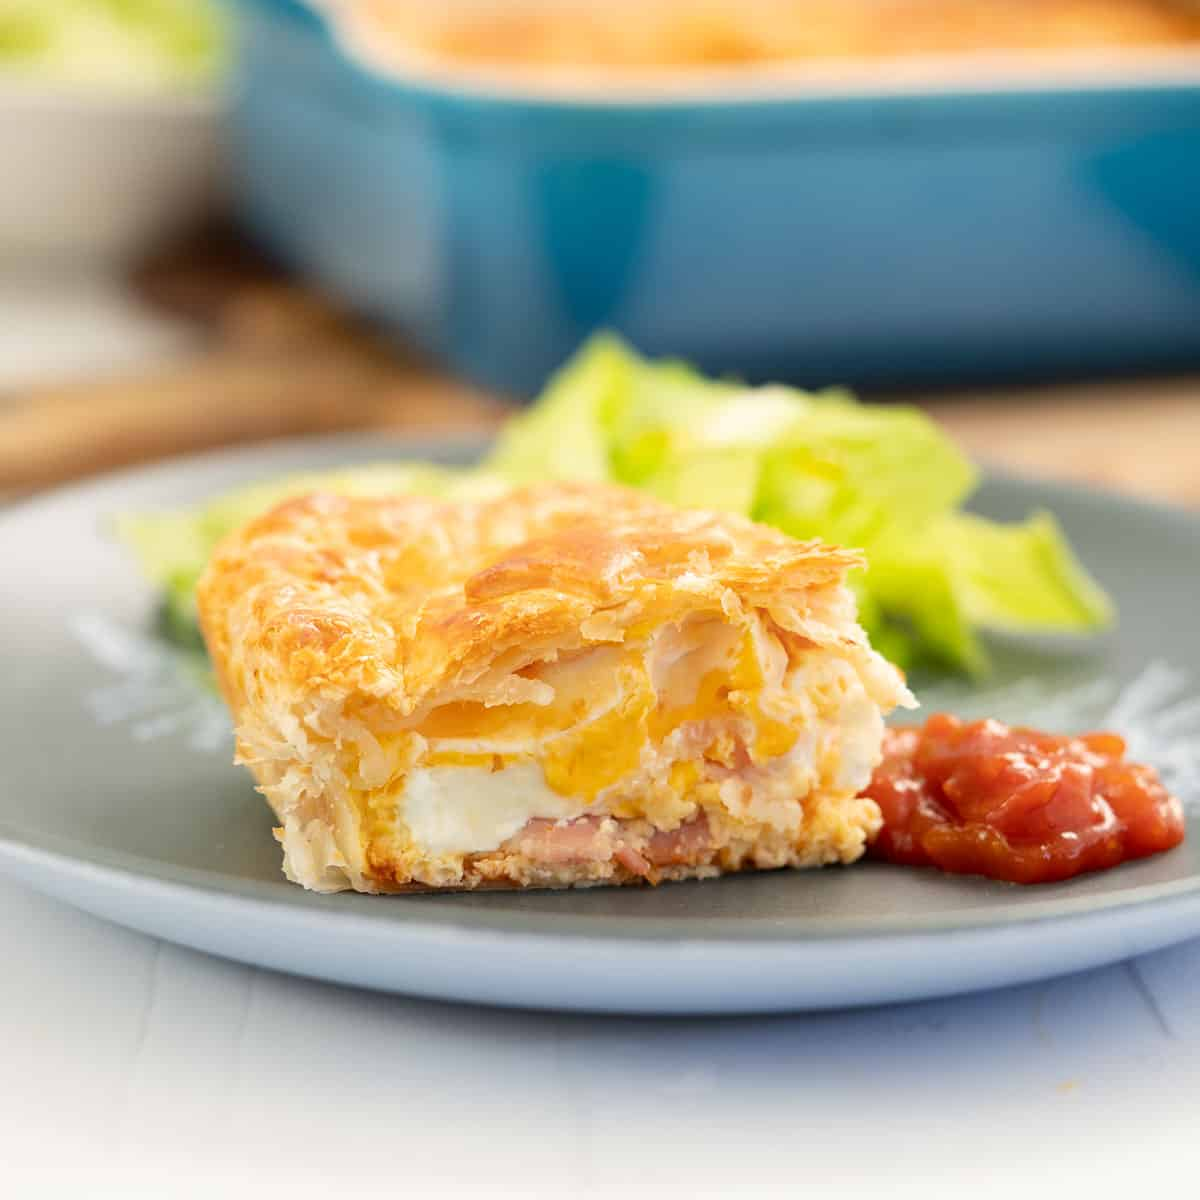 A slice of bacon and egg pie on a blue plate, with tomato relish and salad.